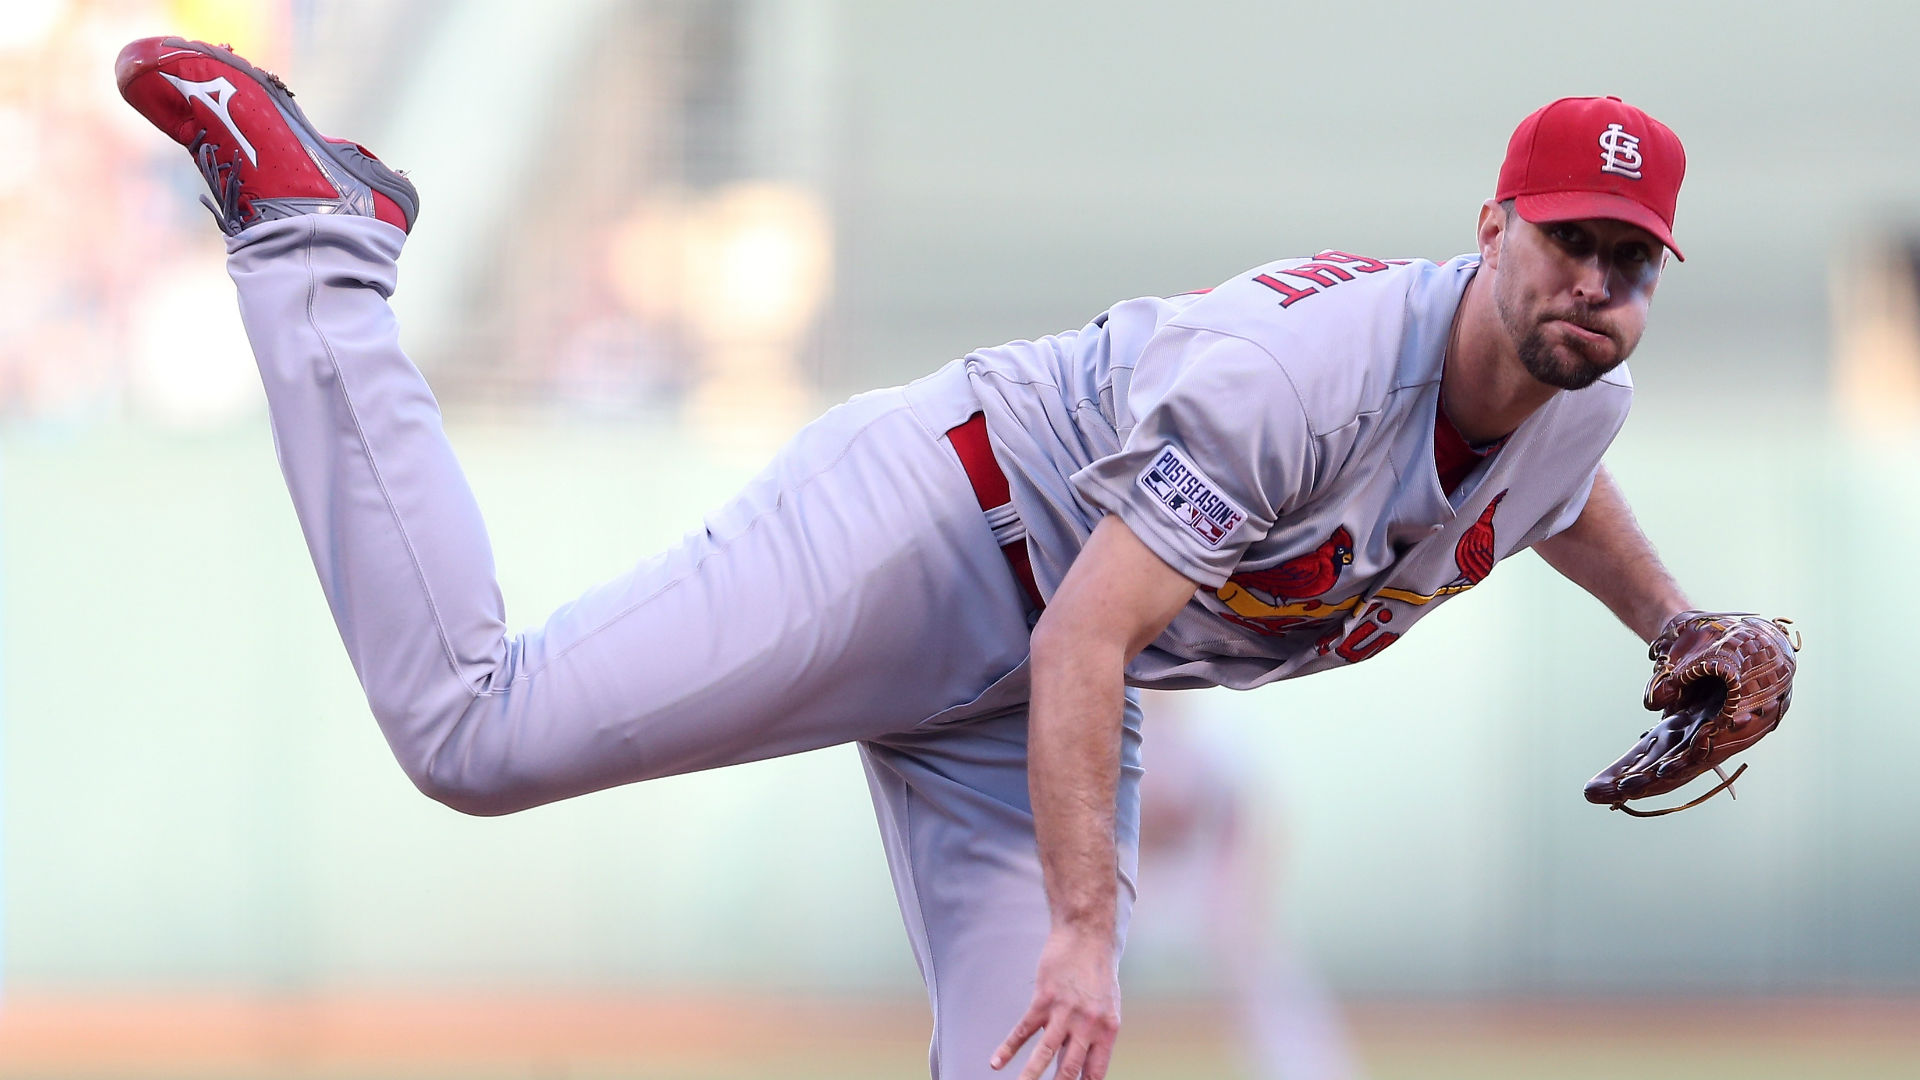 MLB odds and picks – Wainwright up next for light-hitting Reds